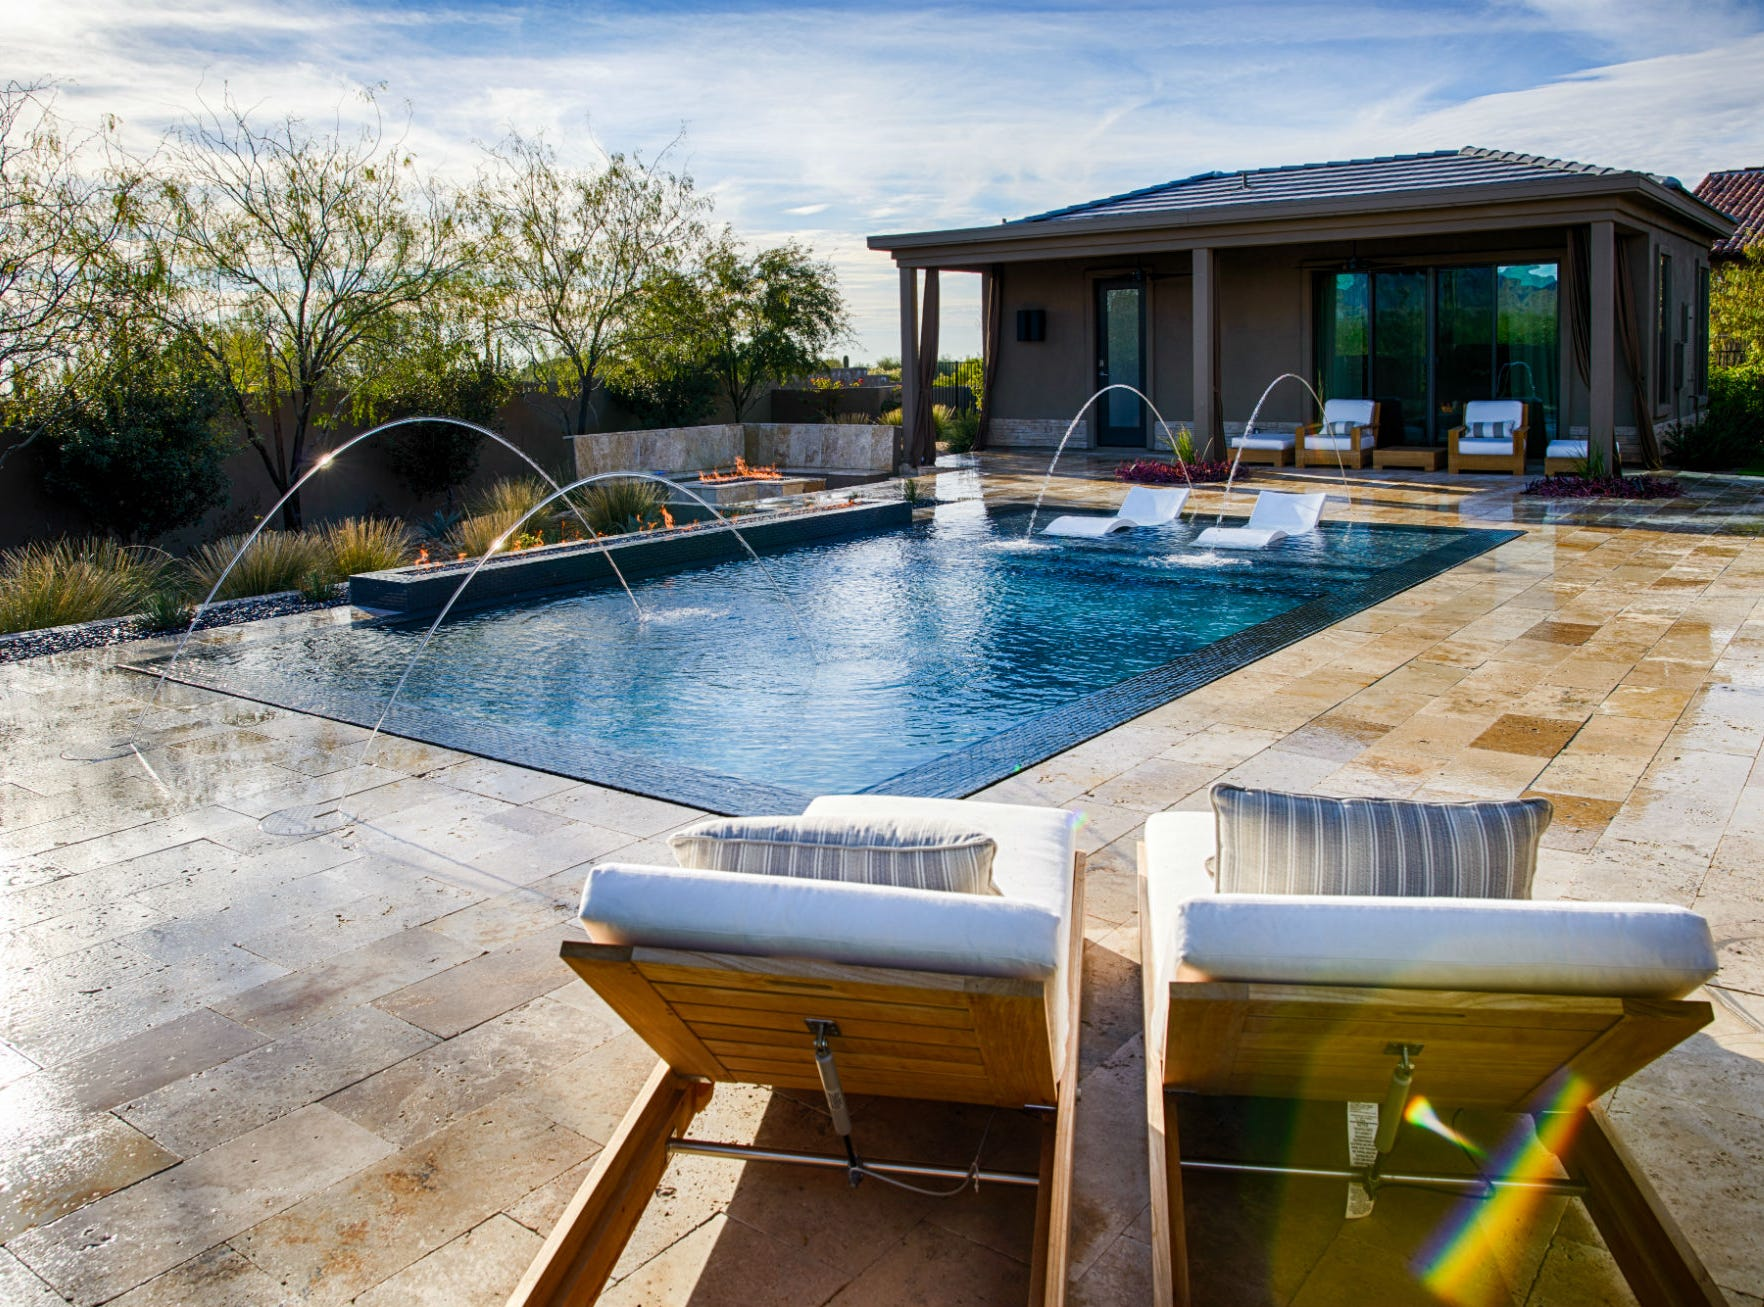 The pool is a wet-edge design.